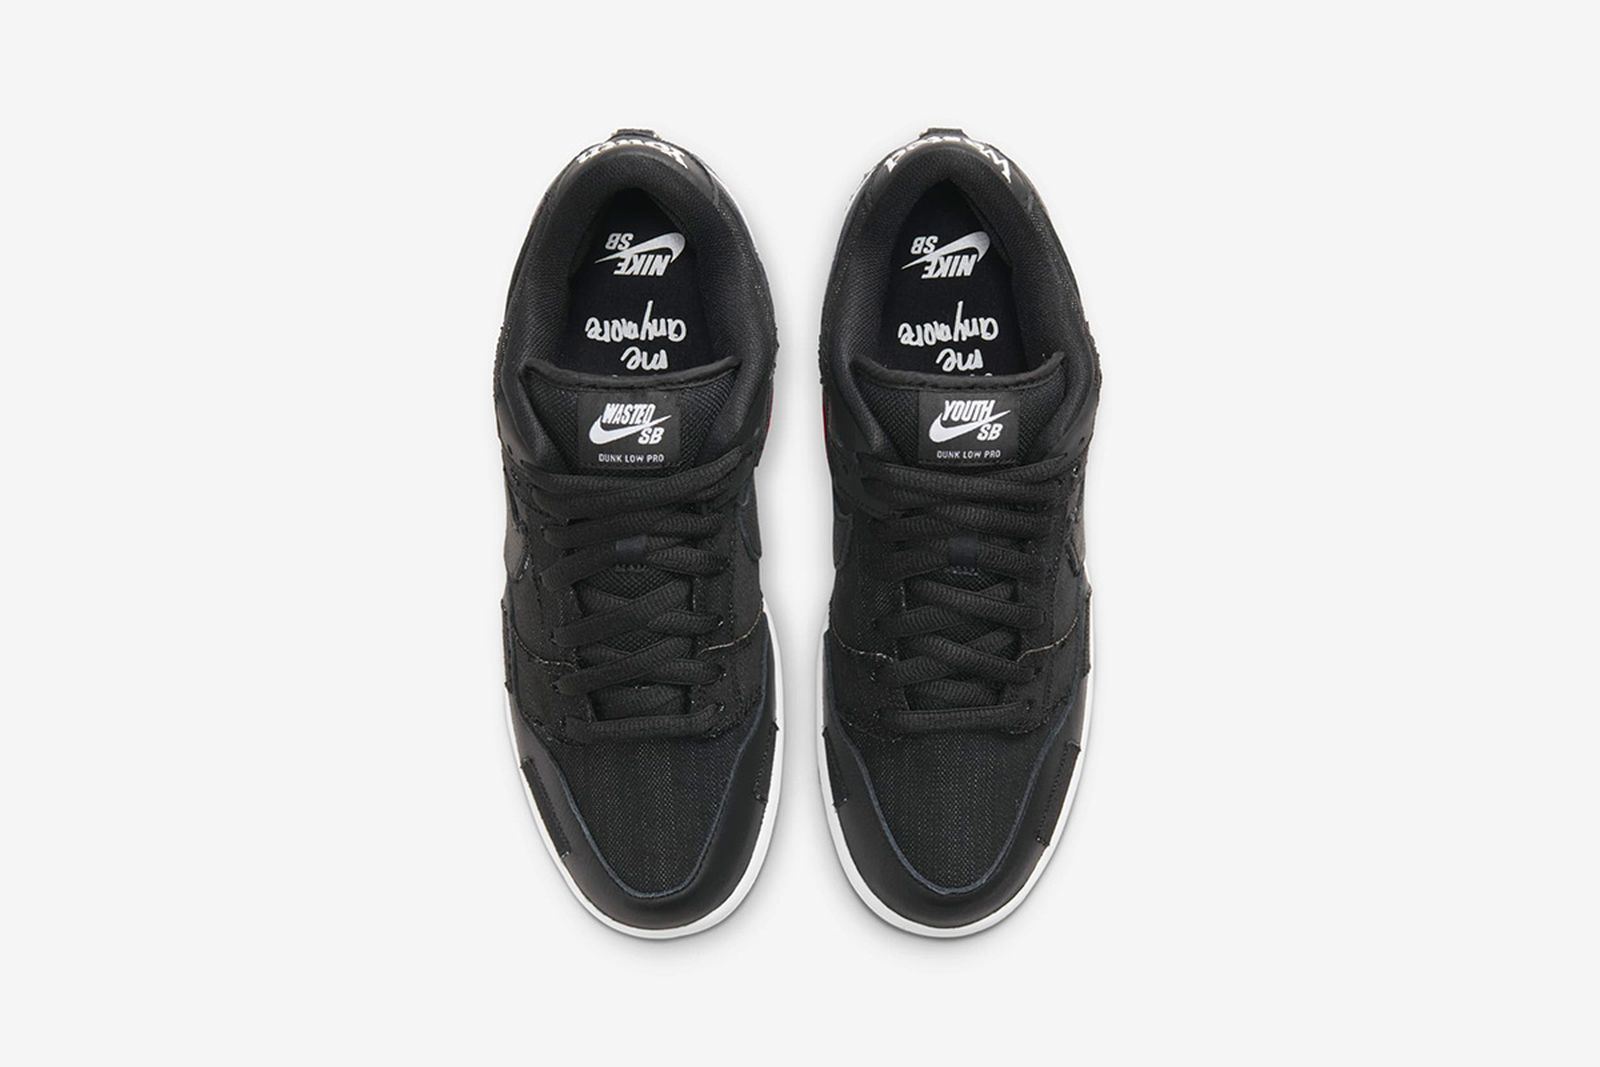 verdy-nike-sb-dunk-low-wasted-youth-release-date-price-02